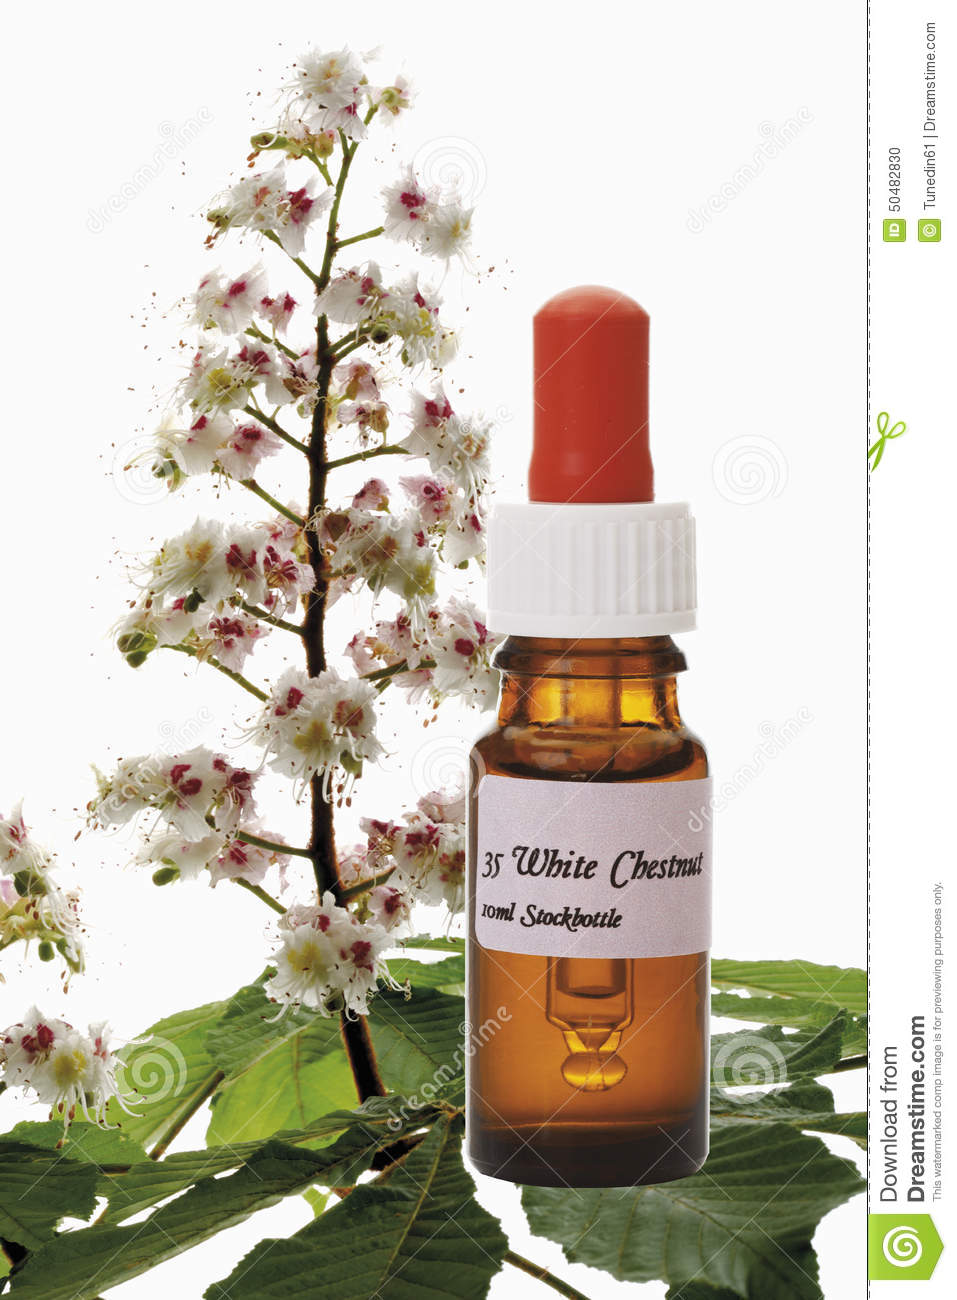 Bottle With Bach Flower Stock Remedy White Chestnut Aesculus